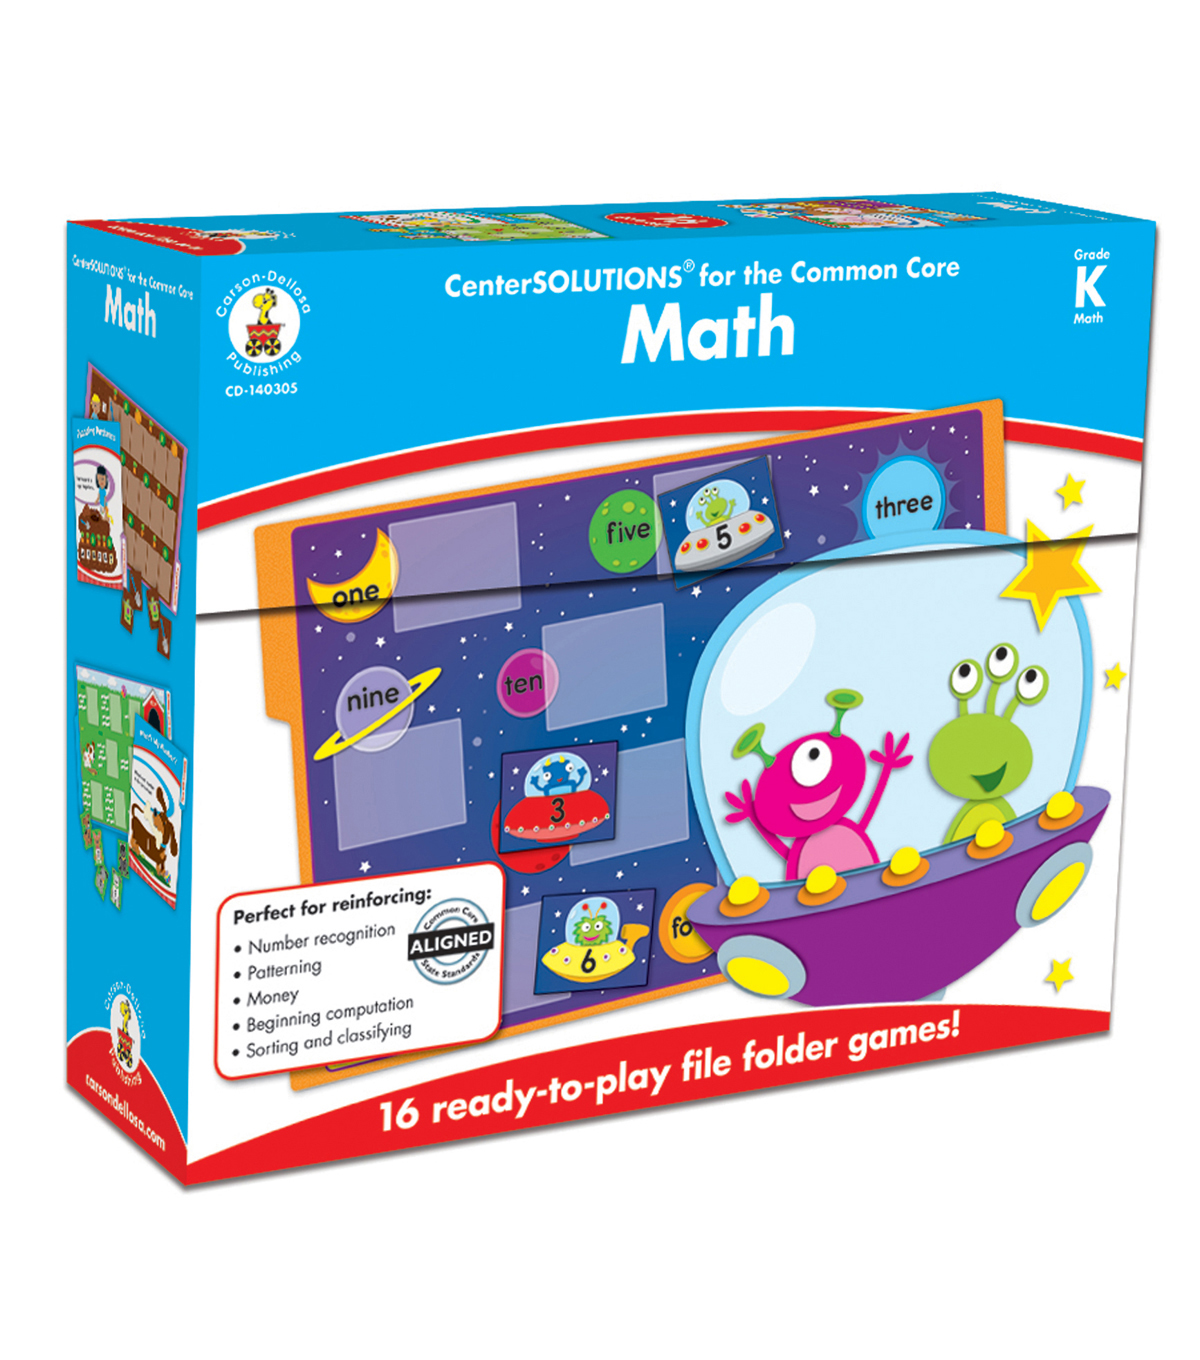 Math File Folder Game, Grade Kindergarten, 16 Games, 20 Sheets of Cards